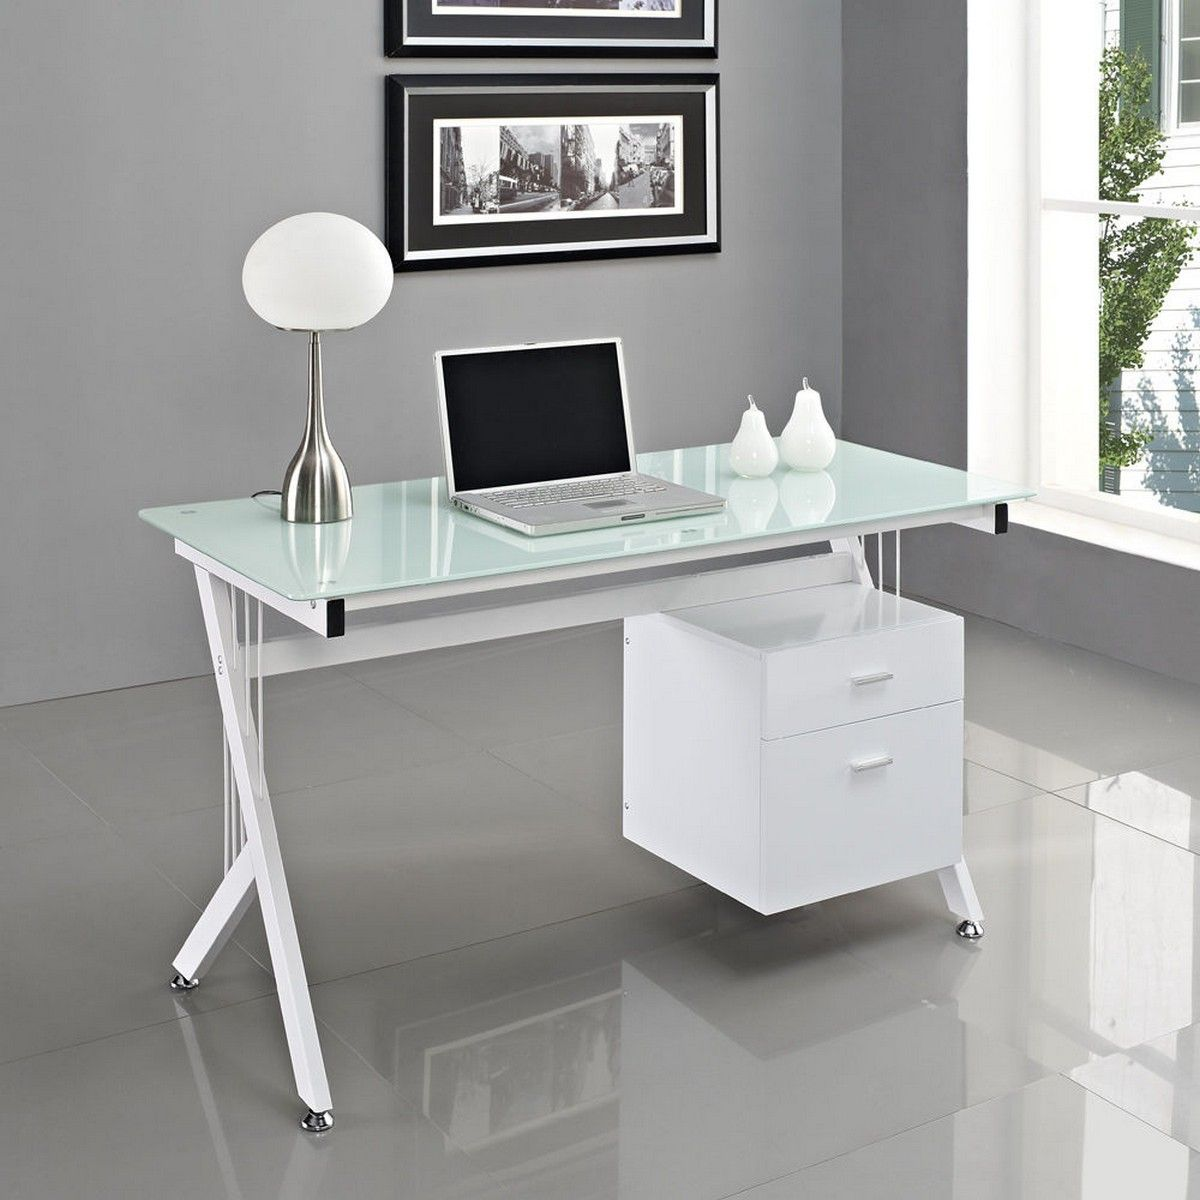 White Glass Computer Desk Pc Table Home Office Minimalist Desk Design Pinterest